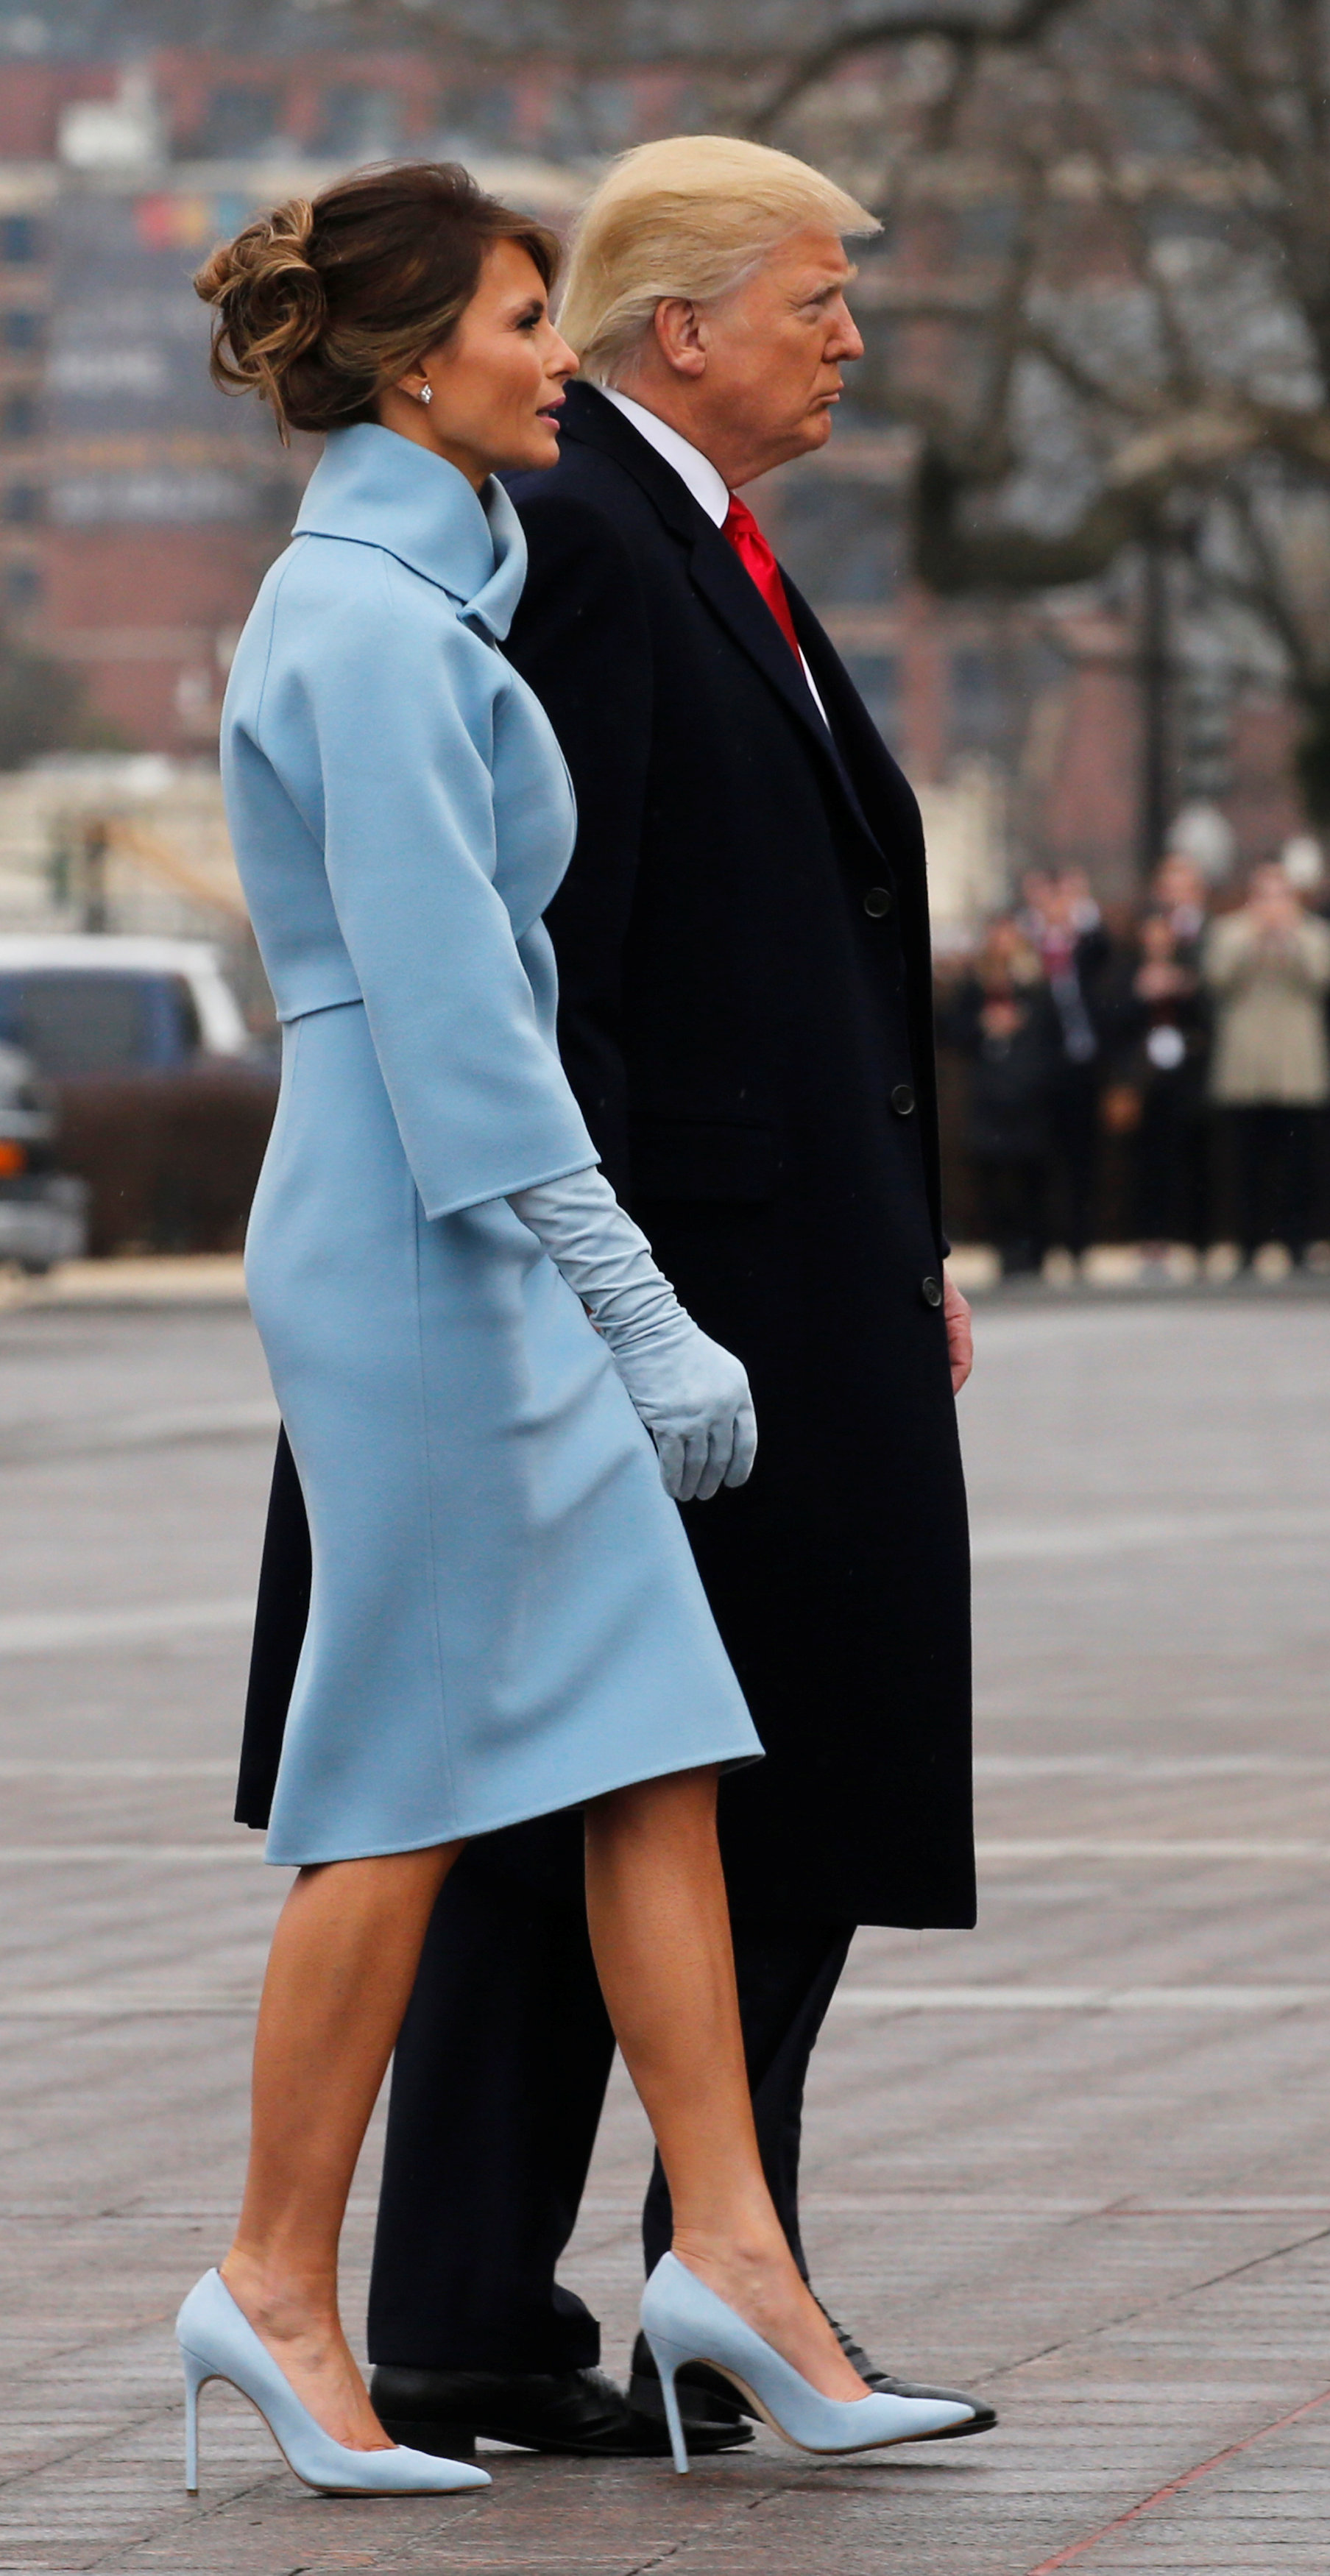 U.S. President Donald Trump and first lady Melania Trump walk after seeing off former U.S. President Barack Obama and his wife Michelle Obama as they depart following Trump's inauguration at the Capitol in Washington, U.S. January 20, 2017. REUTERS/Jonathan Ernst